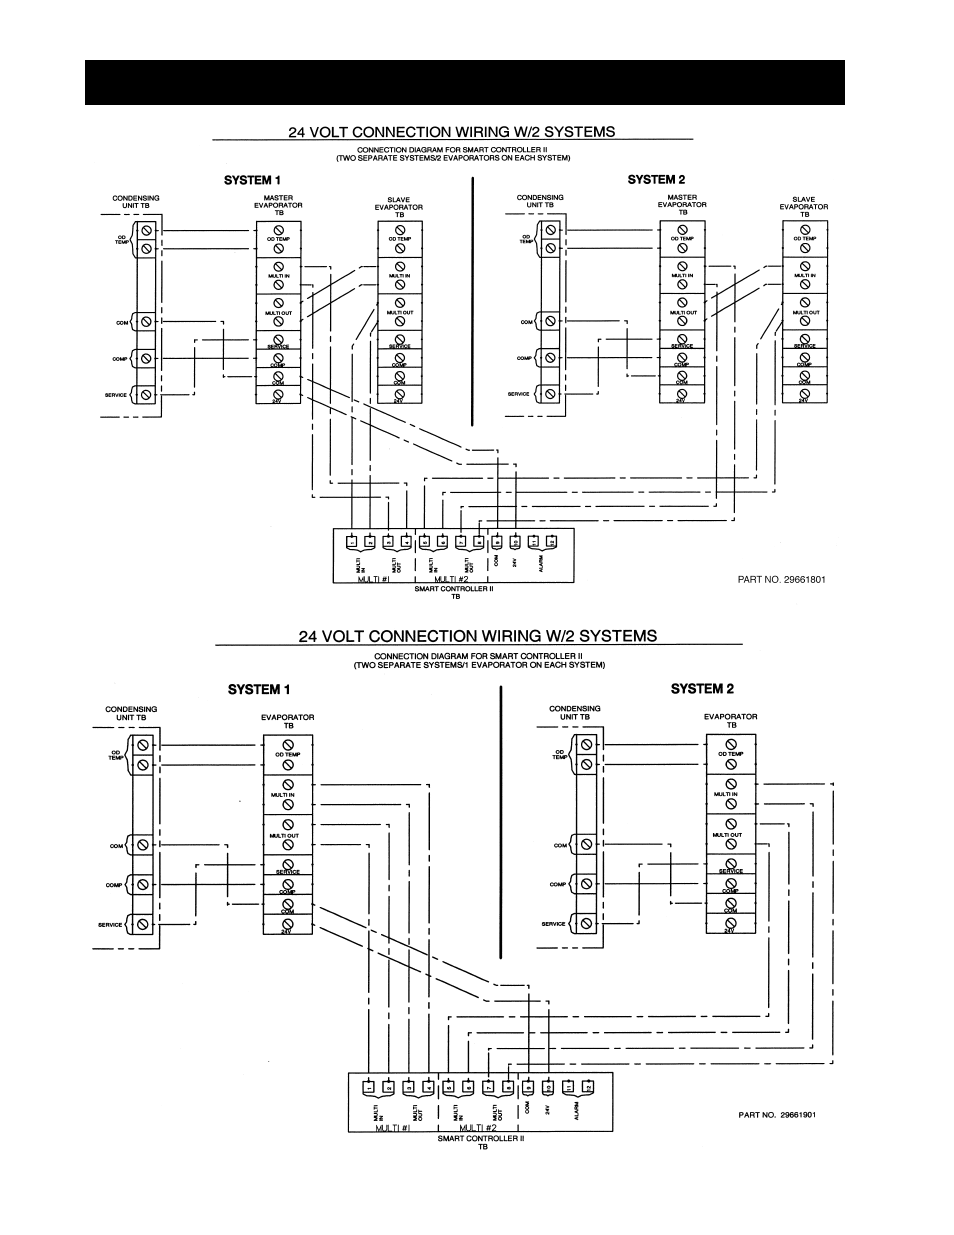 Heatcraft Refrigeration Products Beacon Ii Smart Controller H Im C Page on John Deere Wiring Diagrams